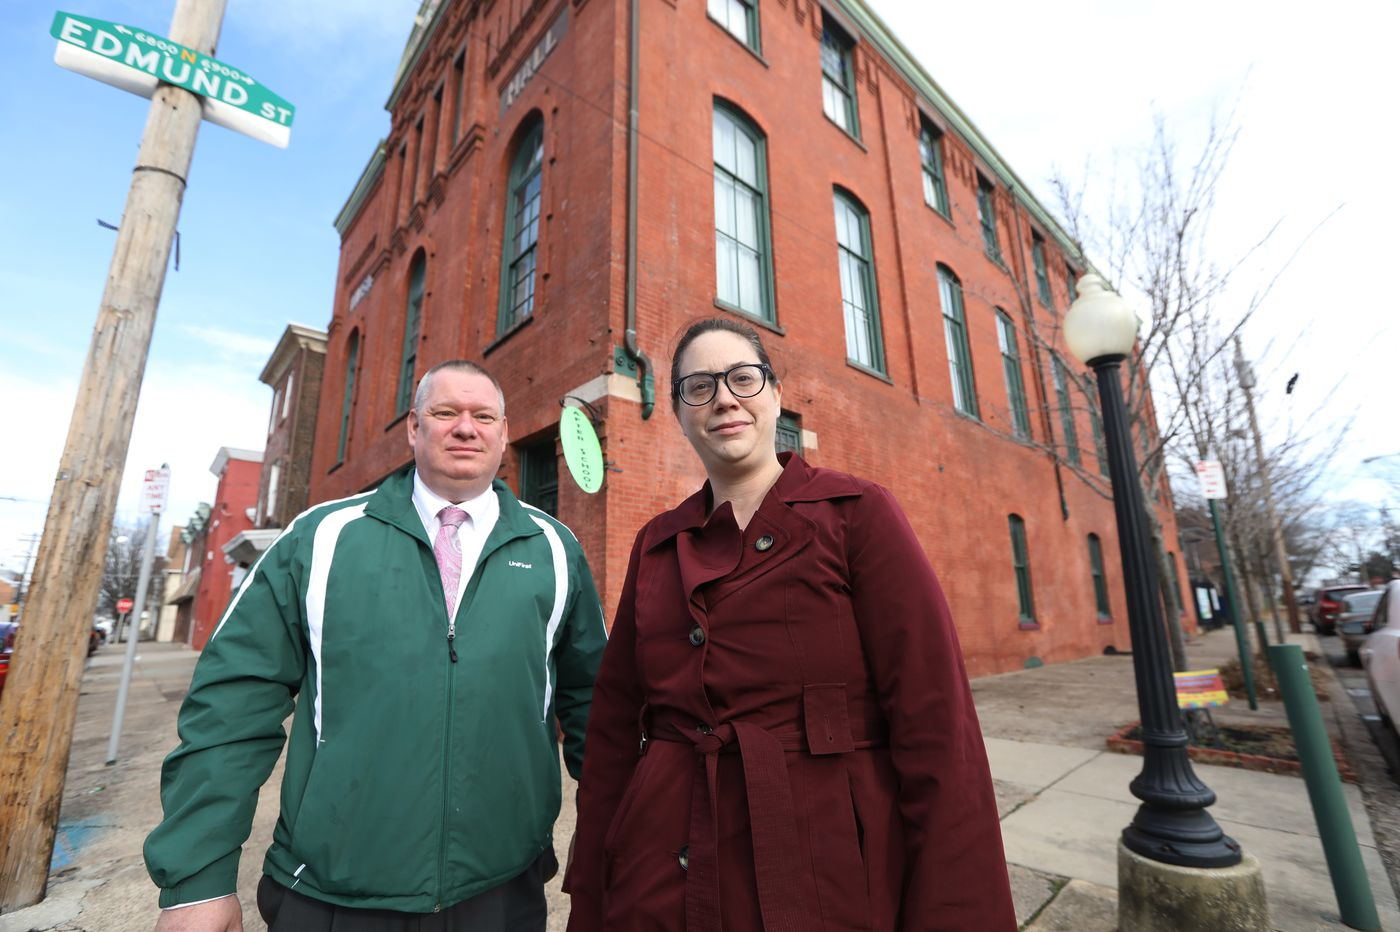 That controversial 'sex-positive' club in Tacony never closed and neighbors no longer care